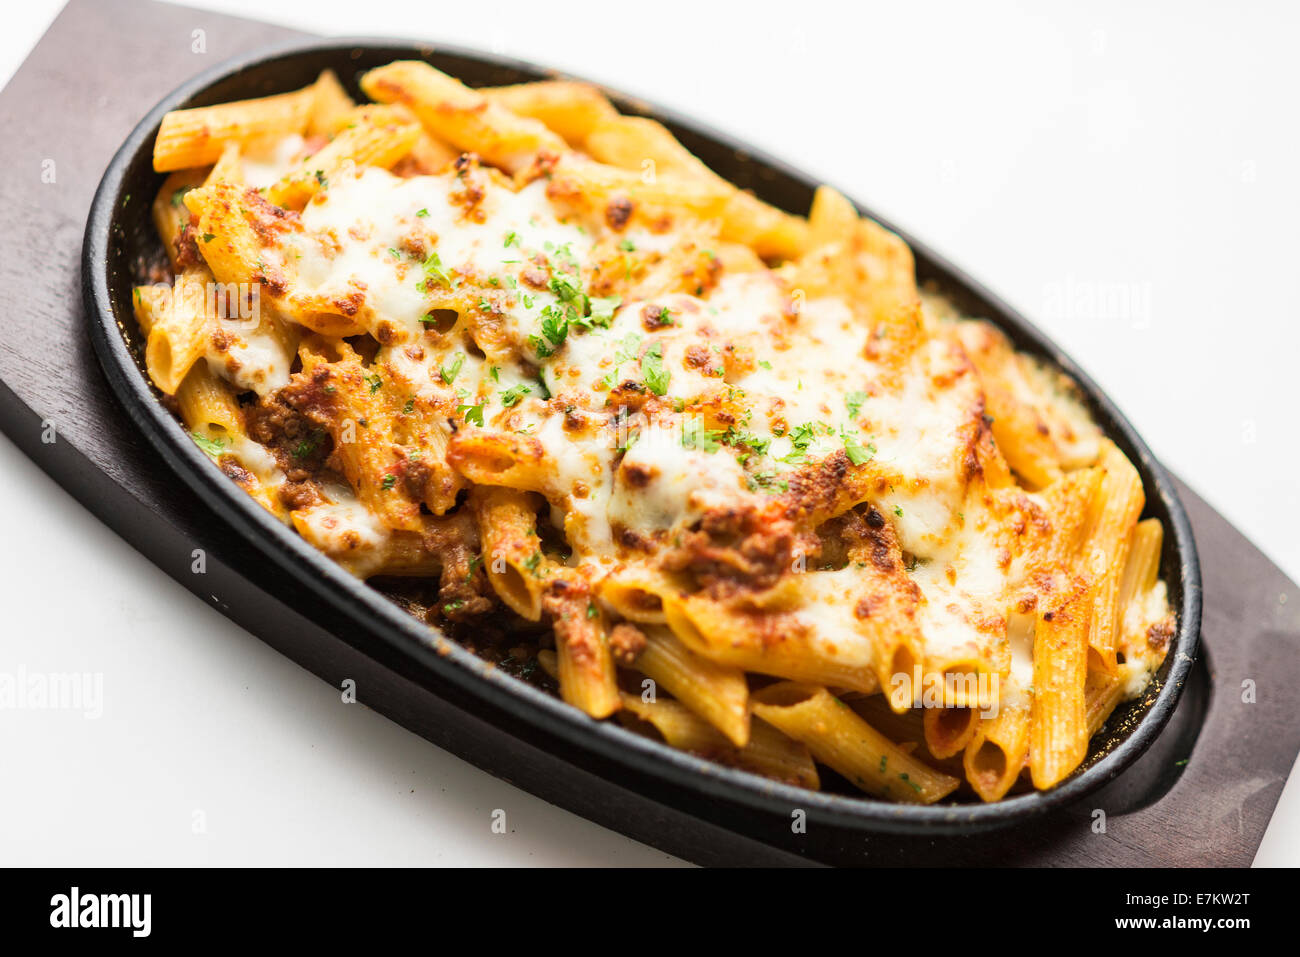 baked penne pasta with meat and cheese - Stock Image